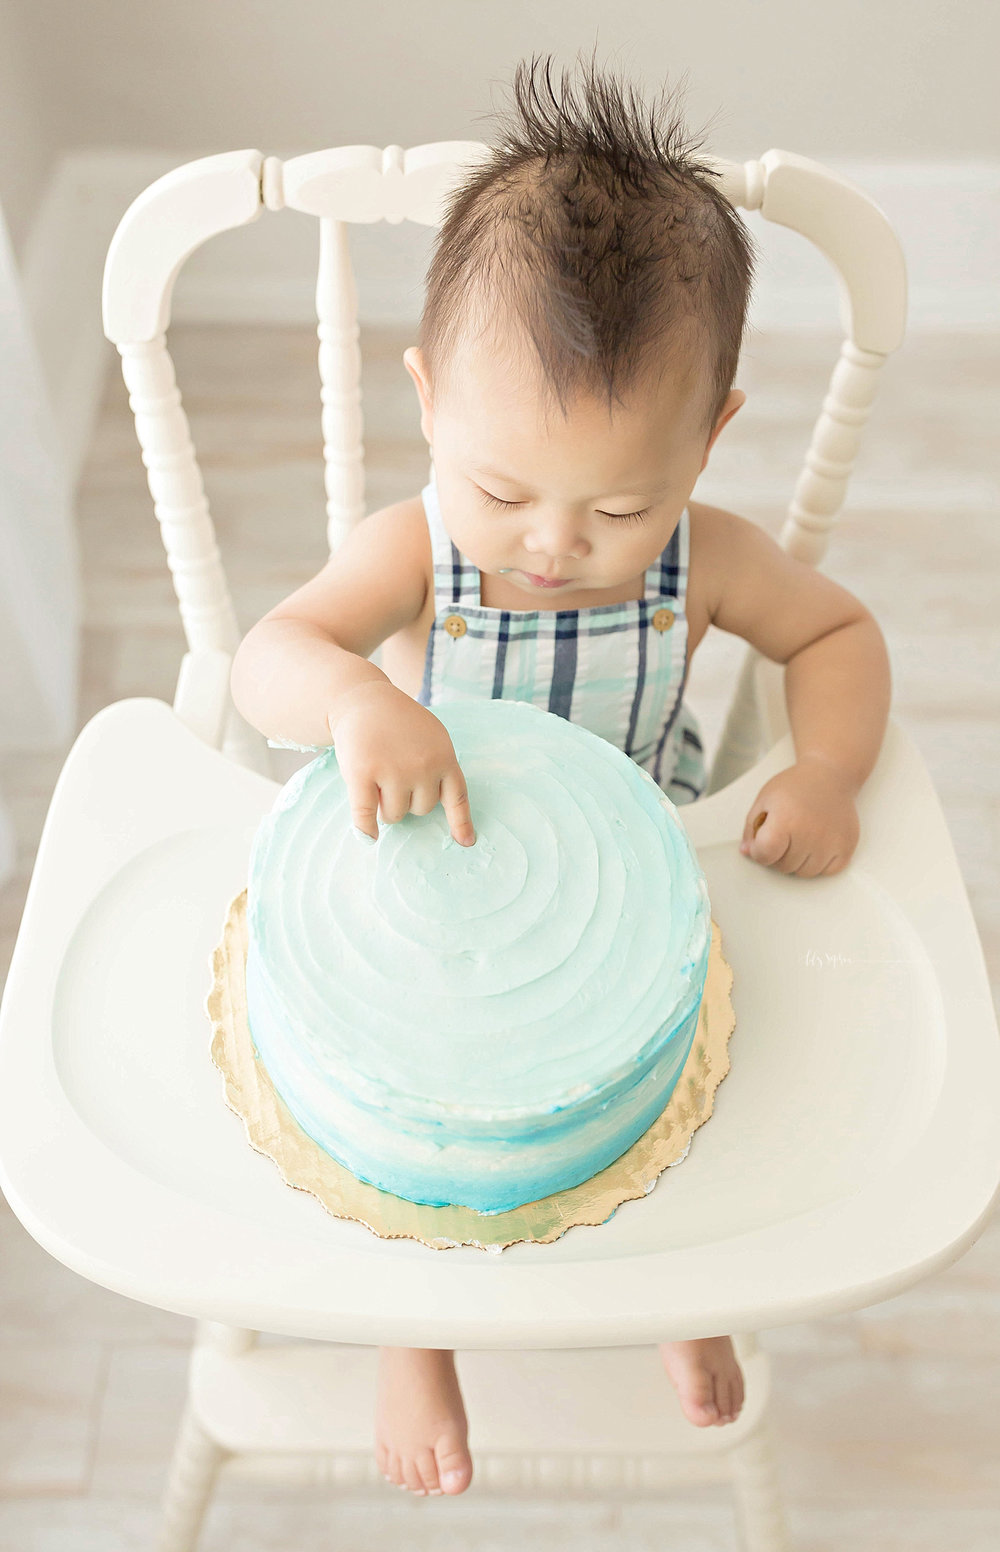 atlanta-georgia-natural-light-studio-intown-first-birthday-cake-smash-baby-boy-big-brother-lawrenceville_3187.jpg